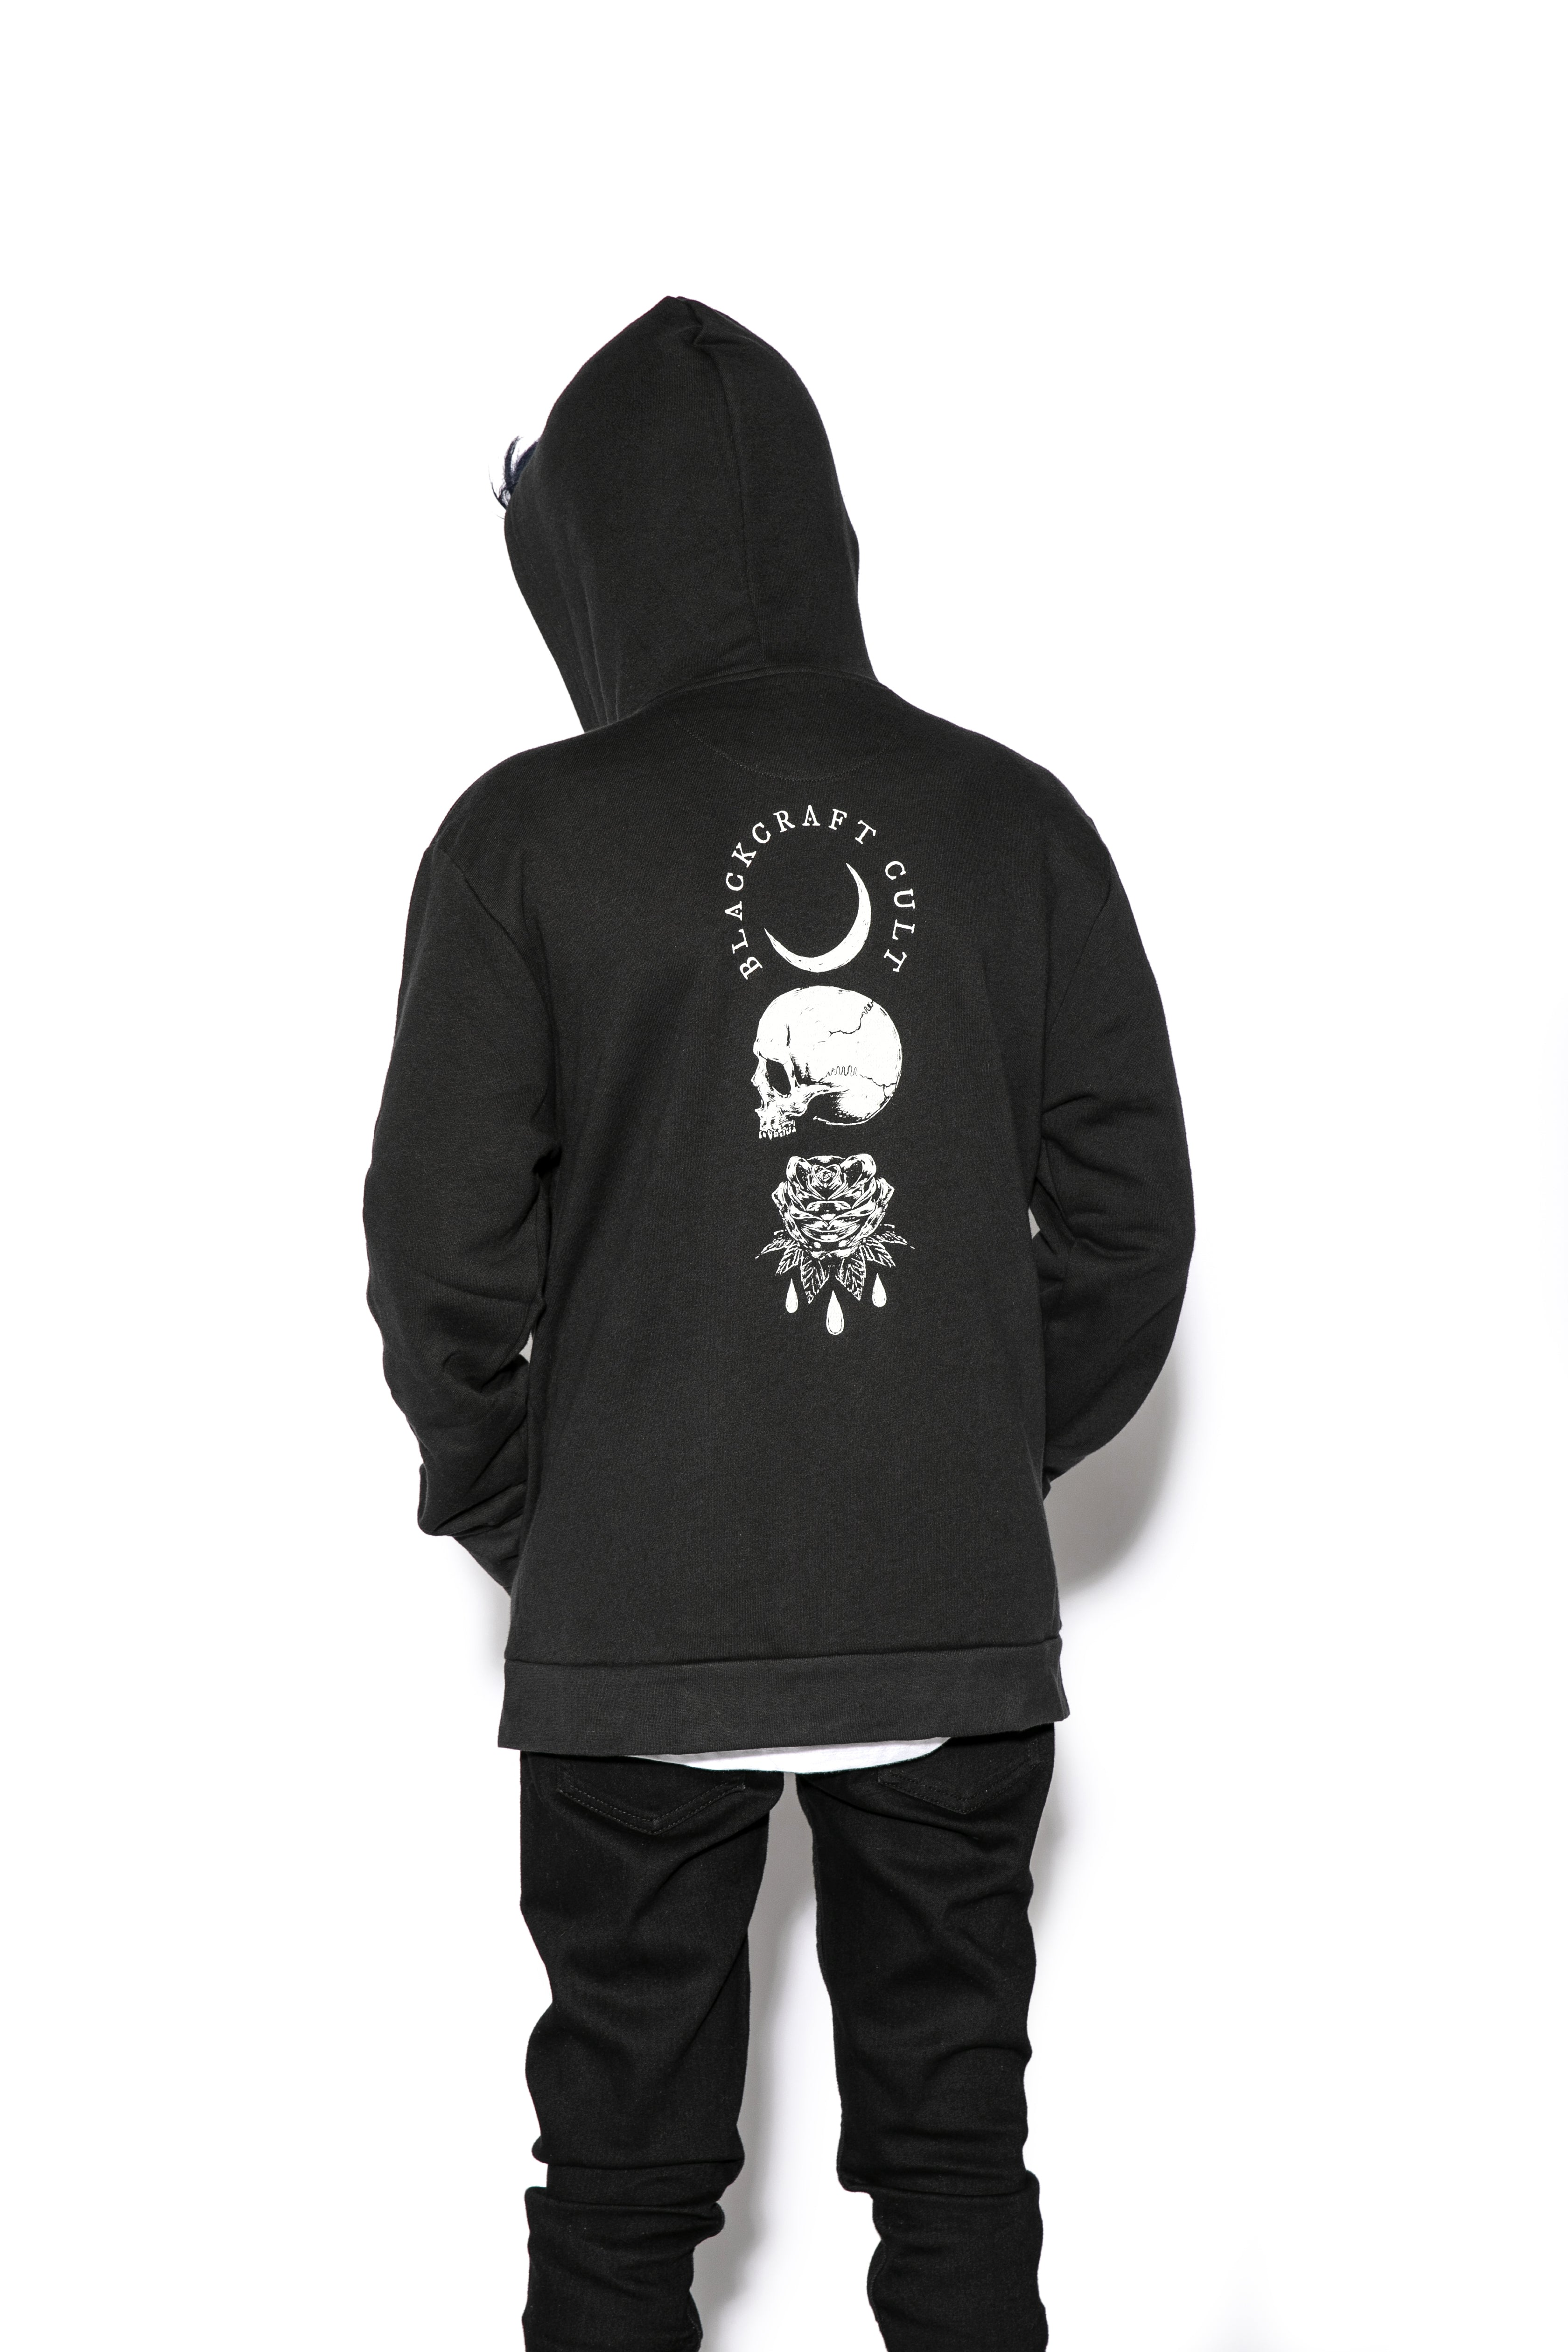 Spirits Of The Dead - Child's Zip Up